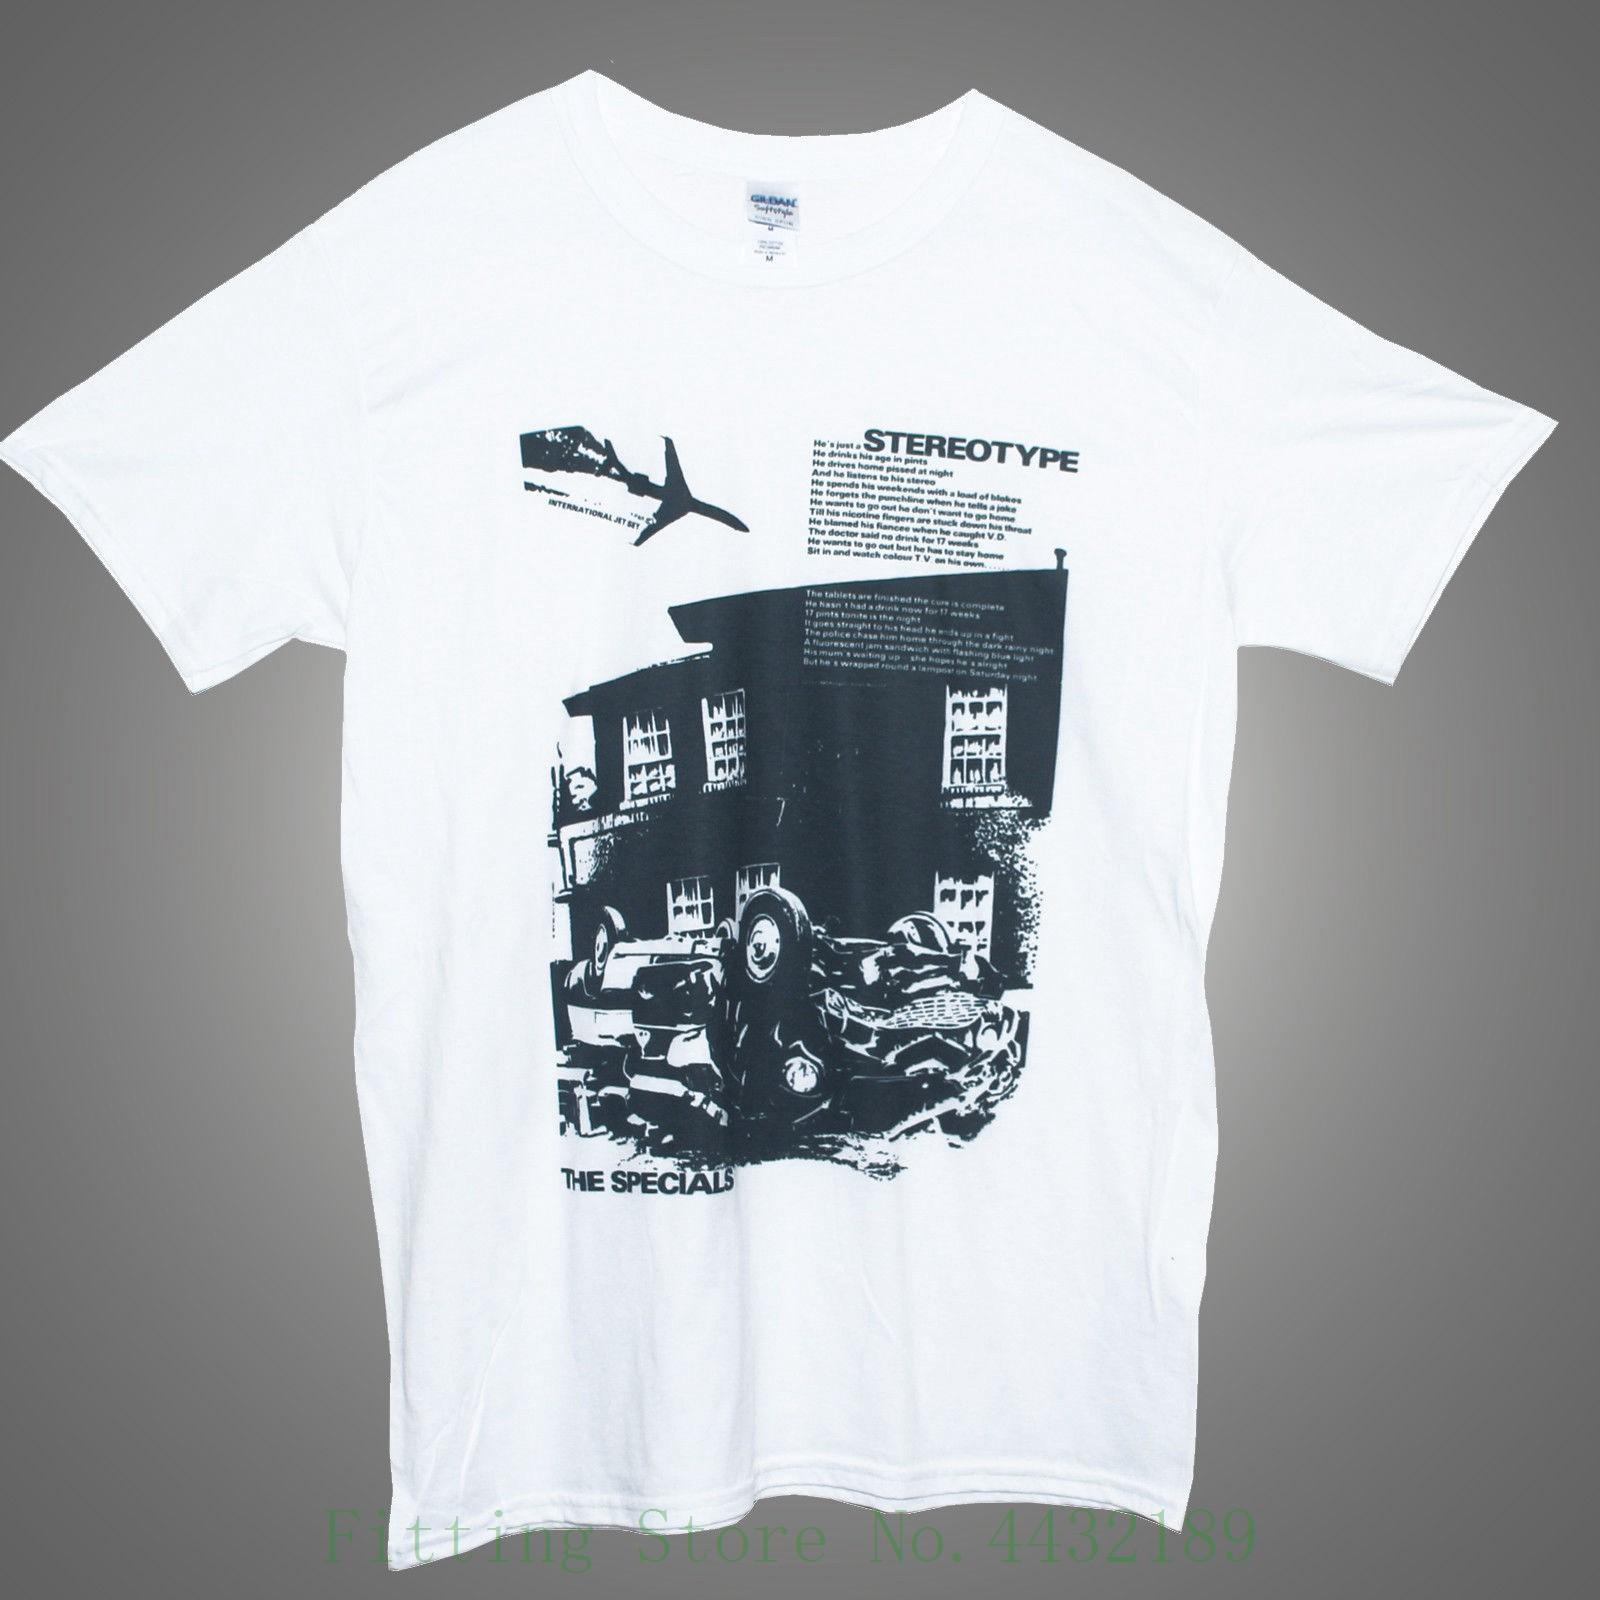 The Specials T Shirt Ska Two Tone Stereotype Printed Graphic Band